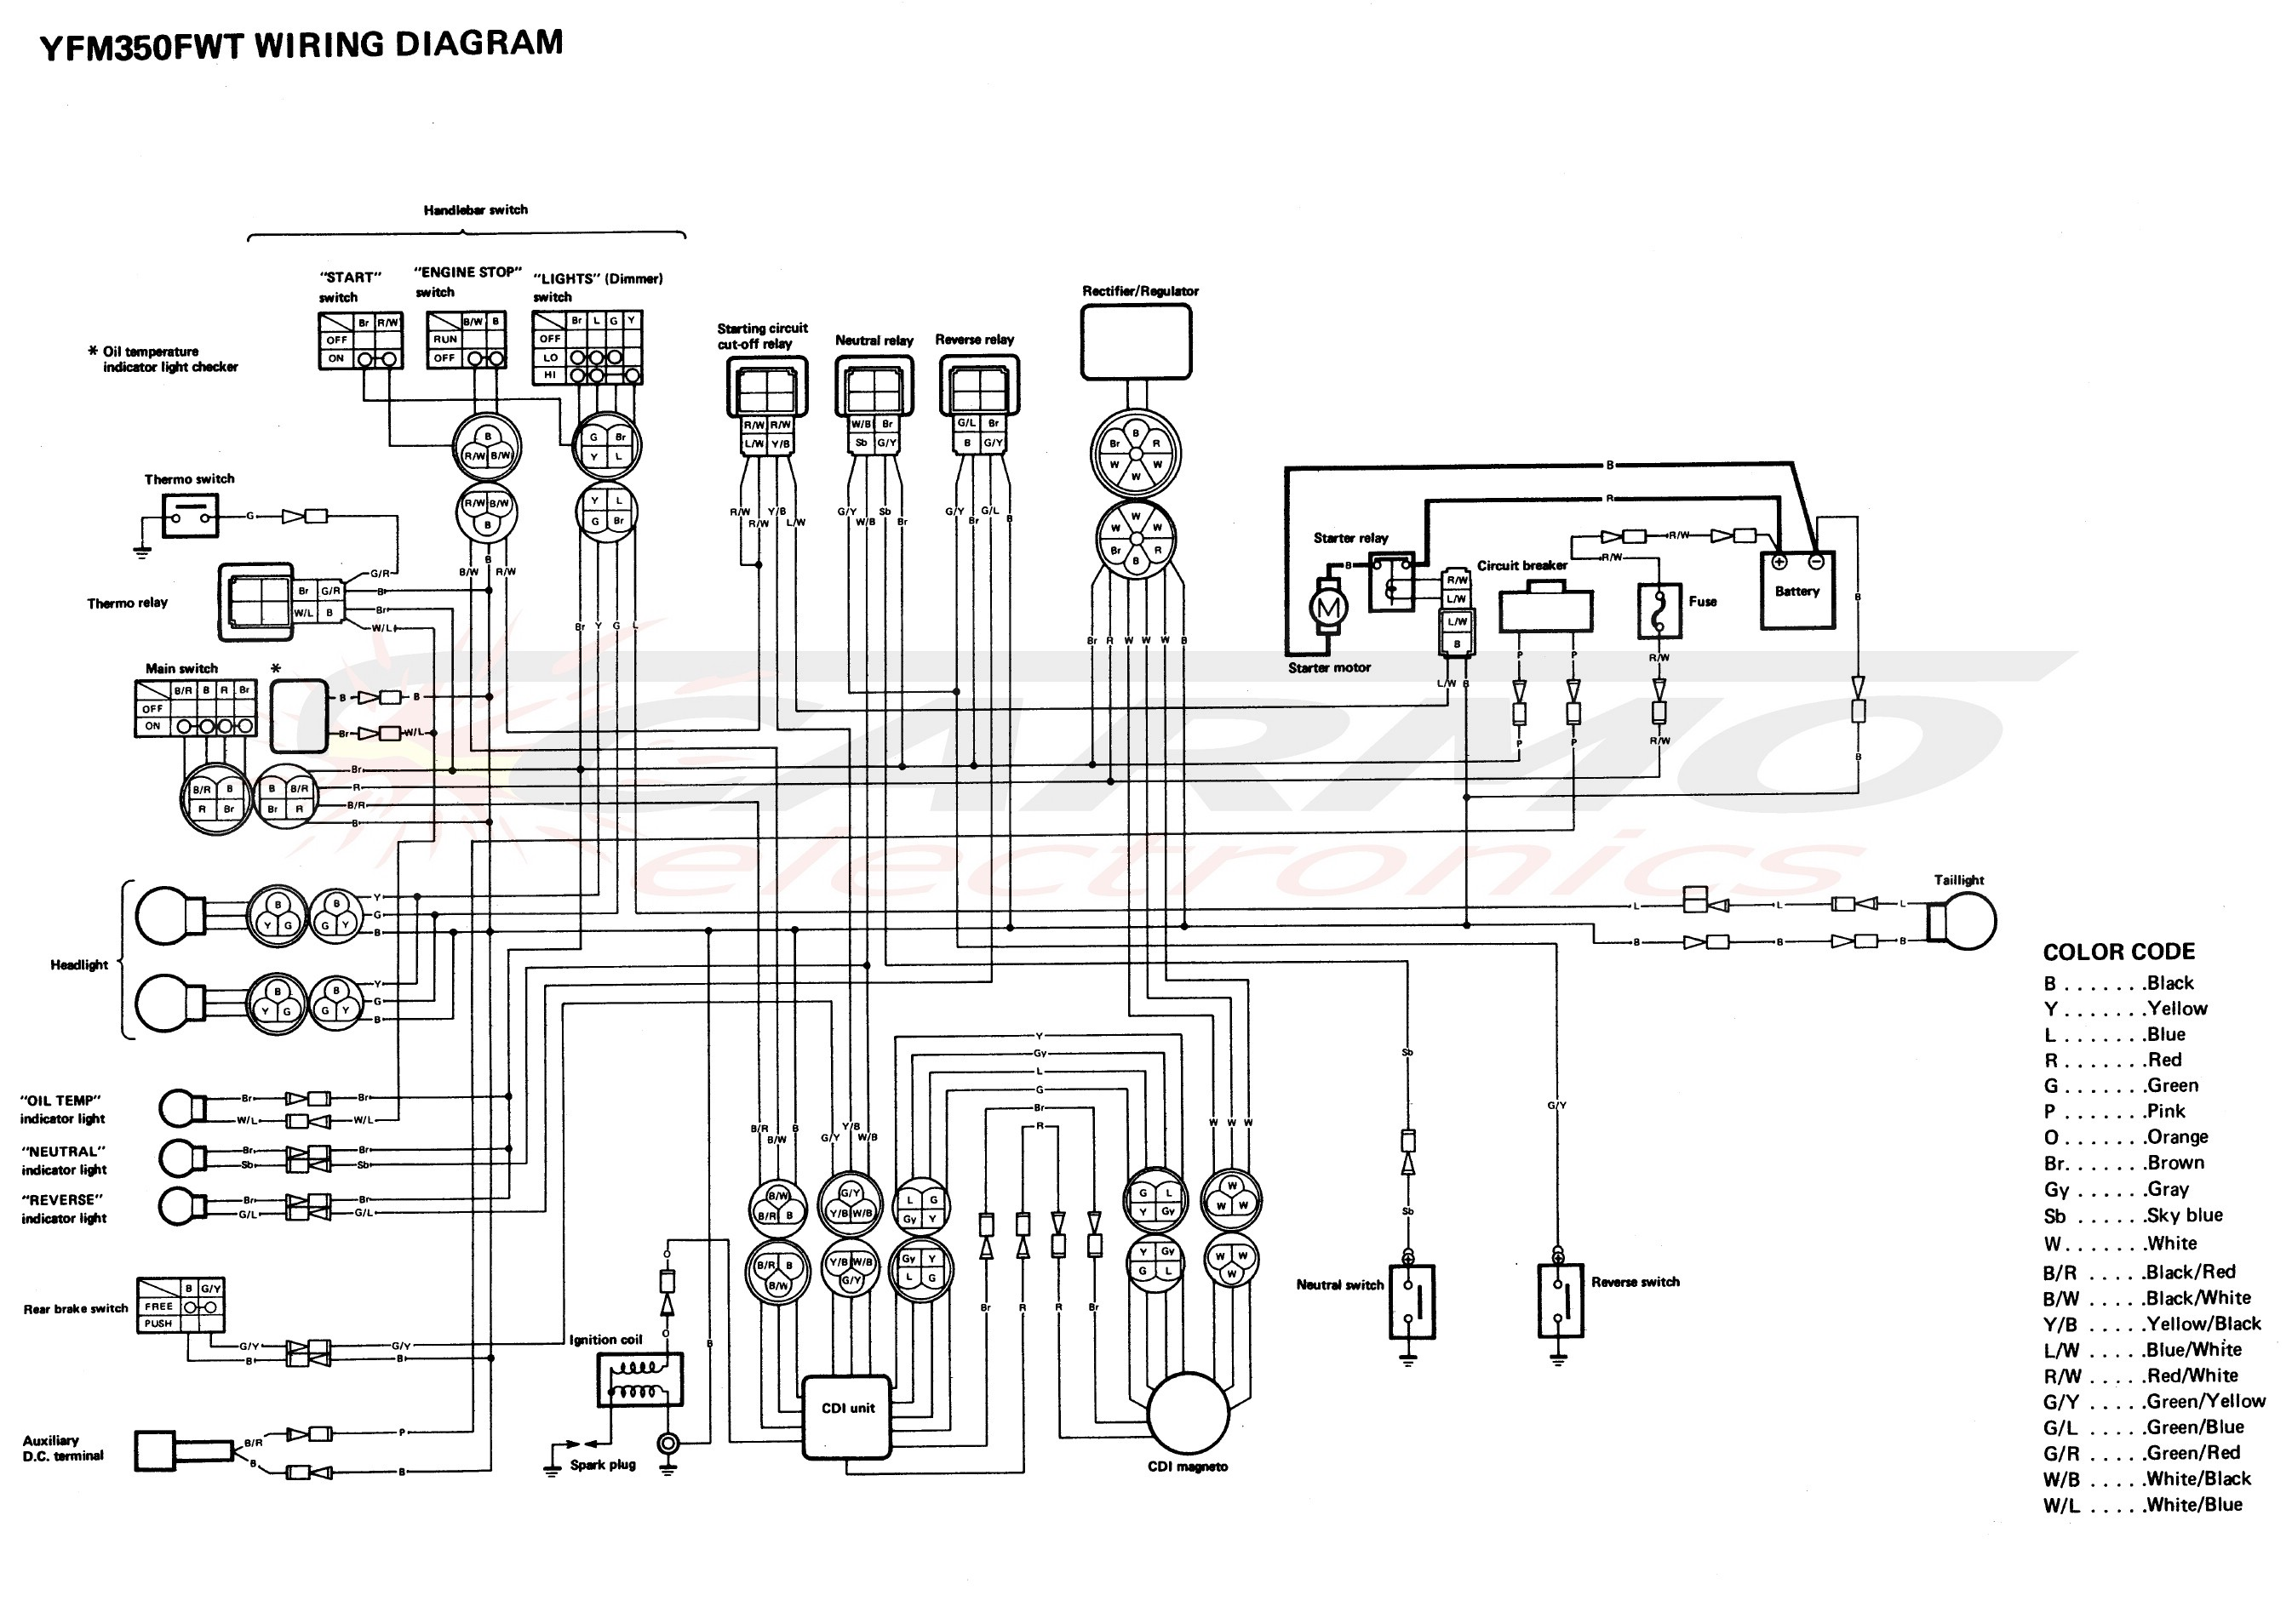 Yamama-Moto4-YFM350FWT-wiring-diagram-cdi-igniton-unit Yamaha Moto Wiring Diagram on 98 yamaha warrior, mighty mule, chevy engine starter, cid distributor, chevy engine,